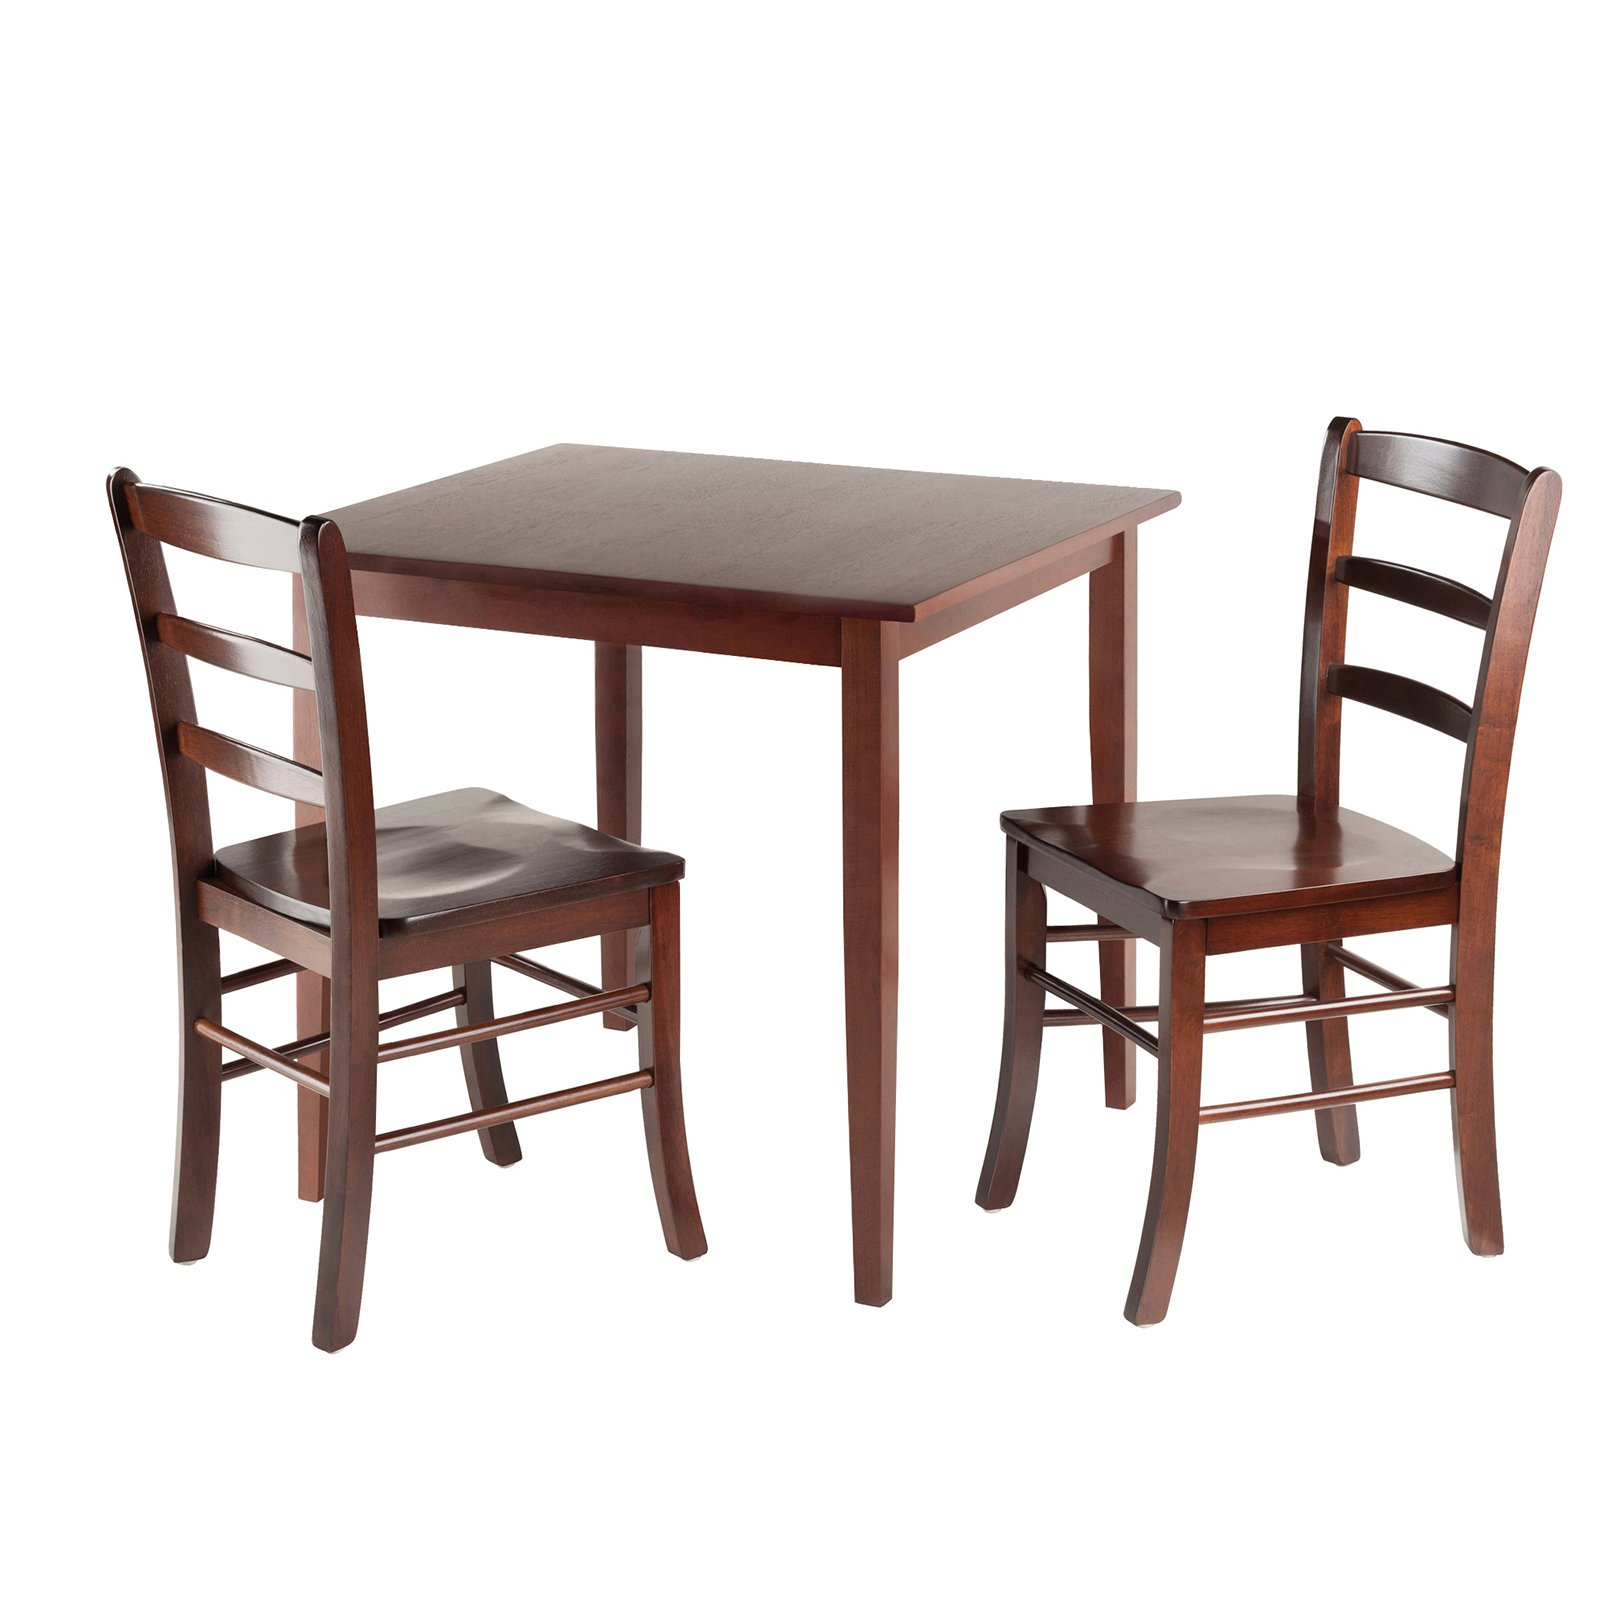 Square Kitchen Table And Chairs – Furniture & Interior Intended For Latest Winsome 3 Piece Counter Height Dining Sets (Image 7 of 20)